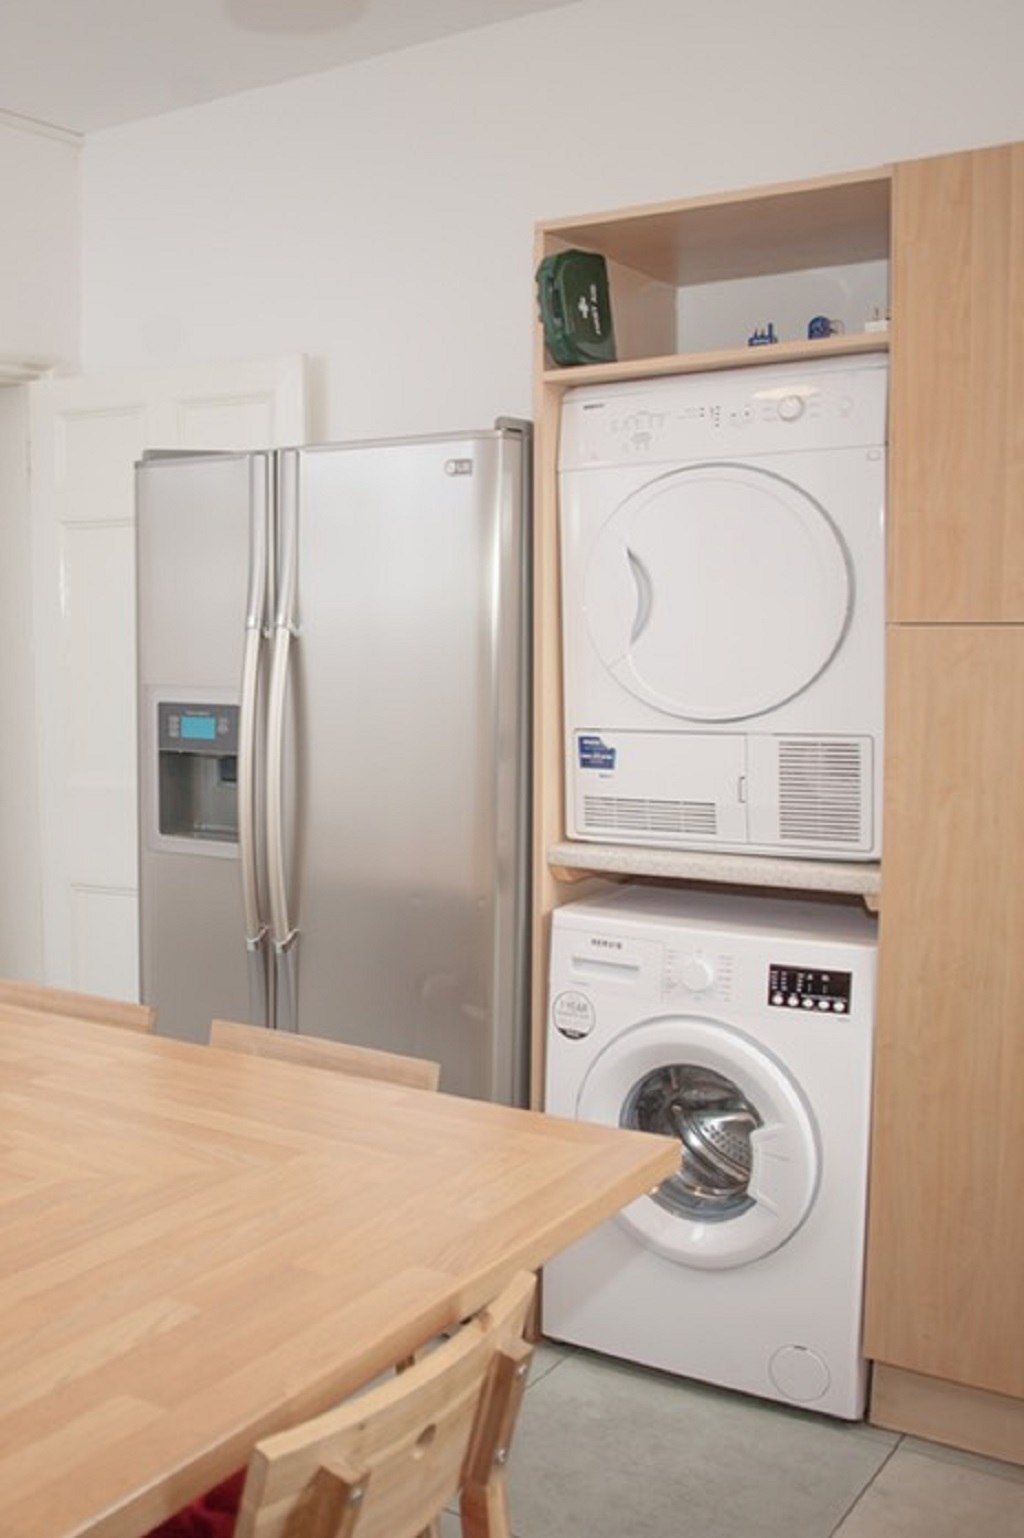 Fridge and laundry at Quire Court Apartment, Centre, Gloucester - Citybase Apartments